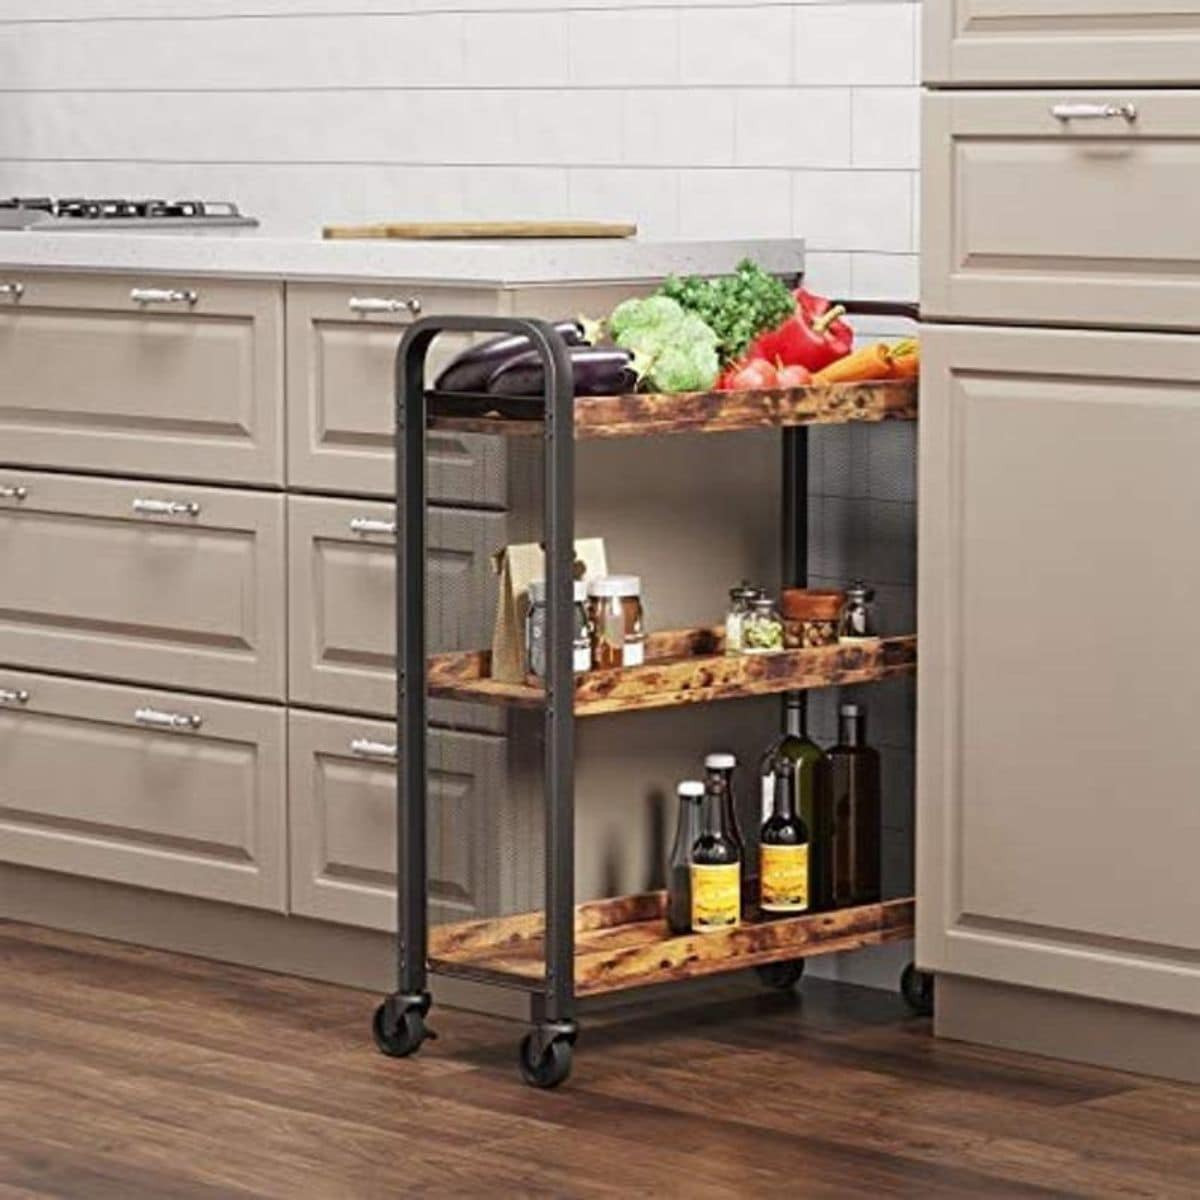 in front of a cream kitchen is a wheeled trolley with 3 tiers made of sarker metal and wooden shelves. Vegetables, condments and bottles sit on the shelves.